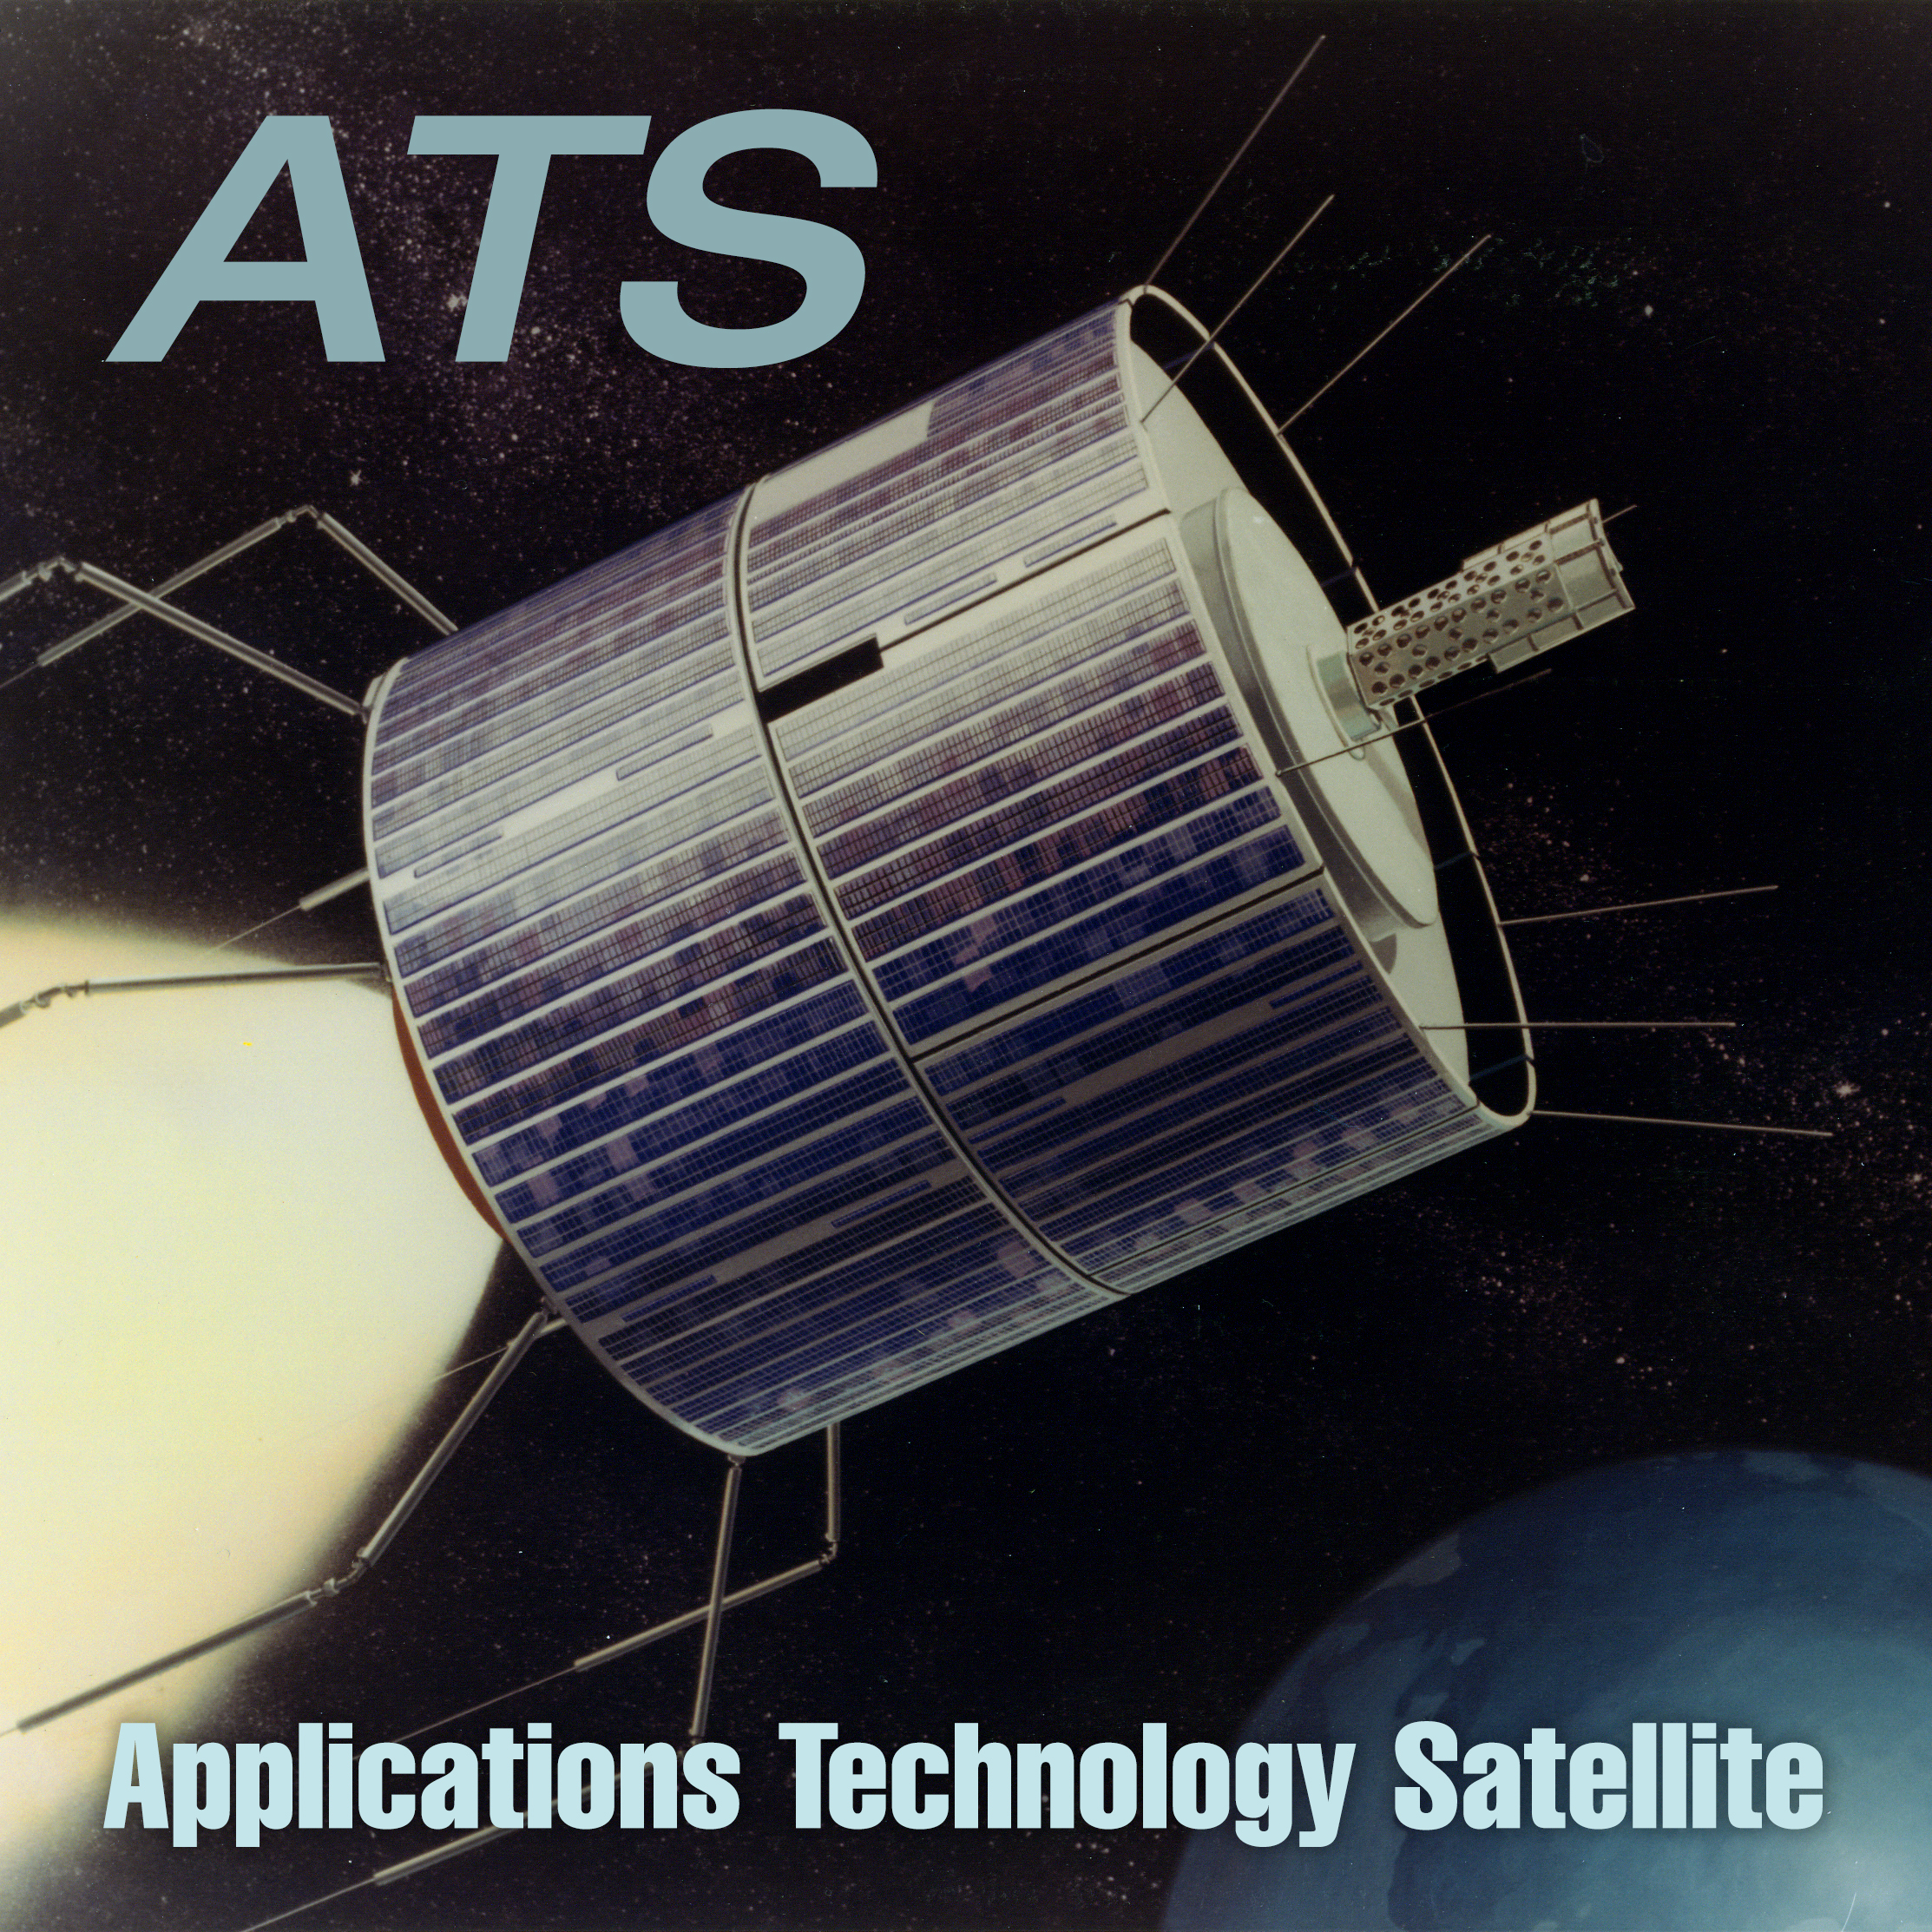 Artist rendering of the ATS-1 satellite.